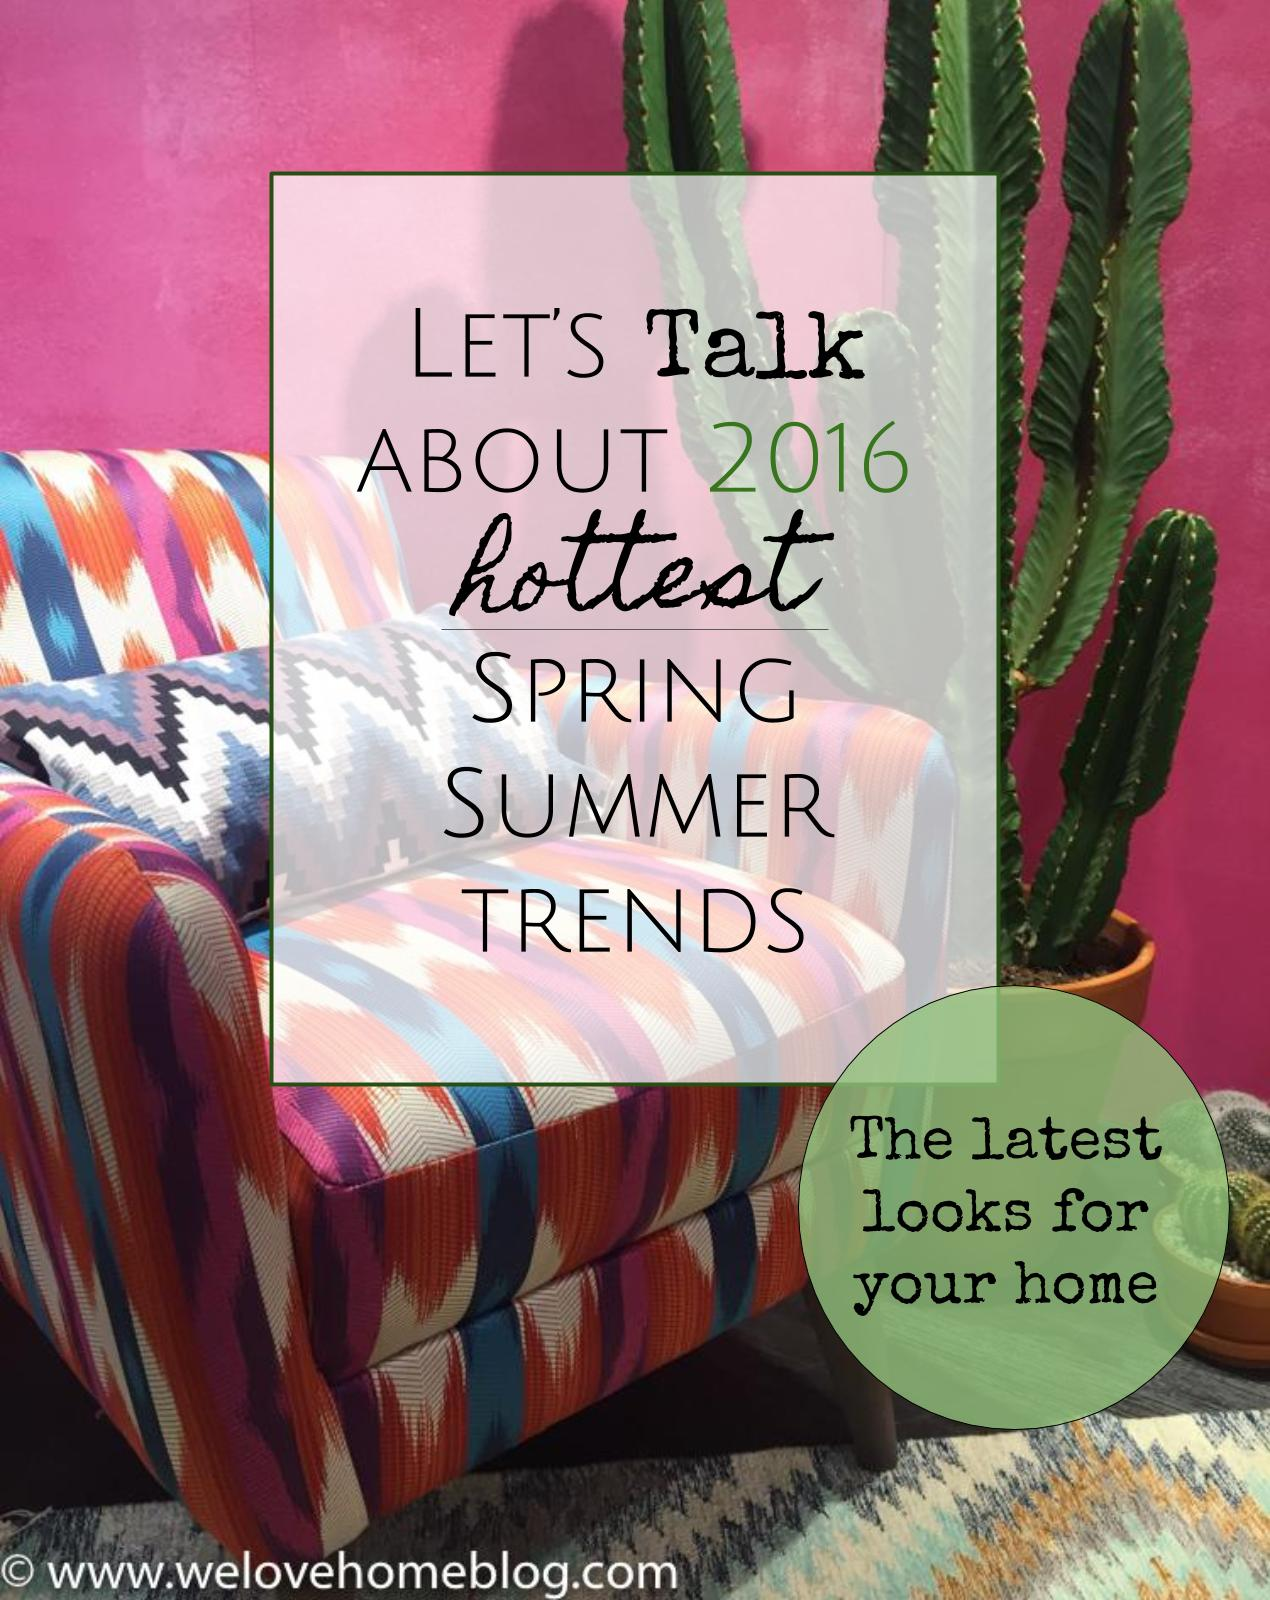 Let's take about 2016 hottest spring summer trends. The latest looks for your home. From www.welovehomeblog.com